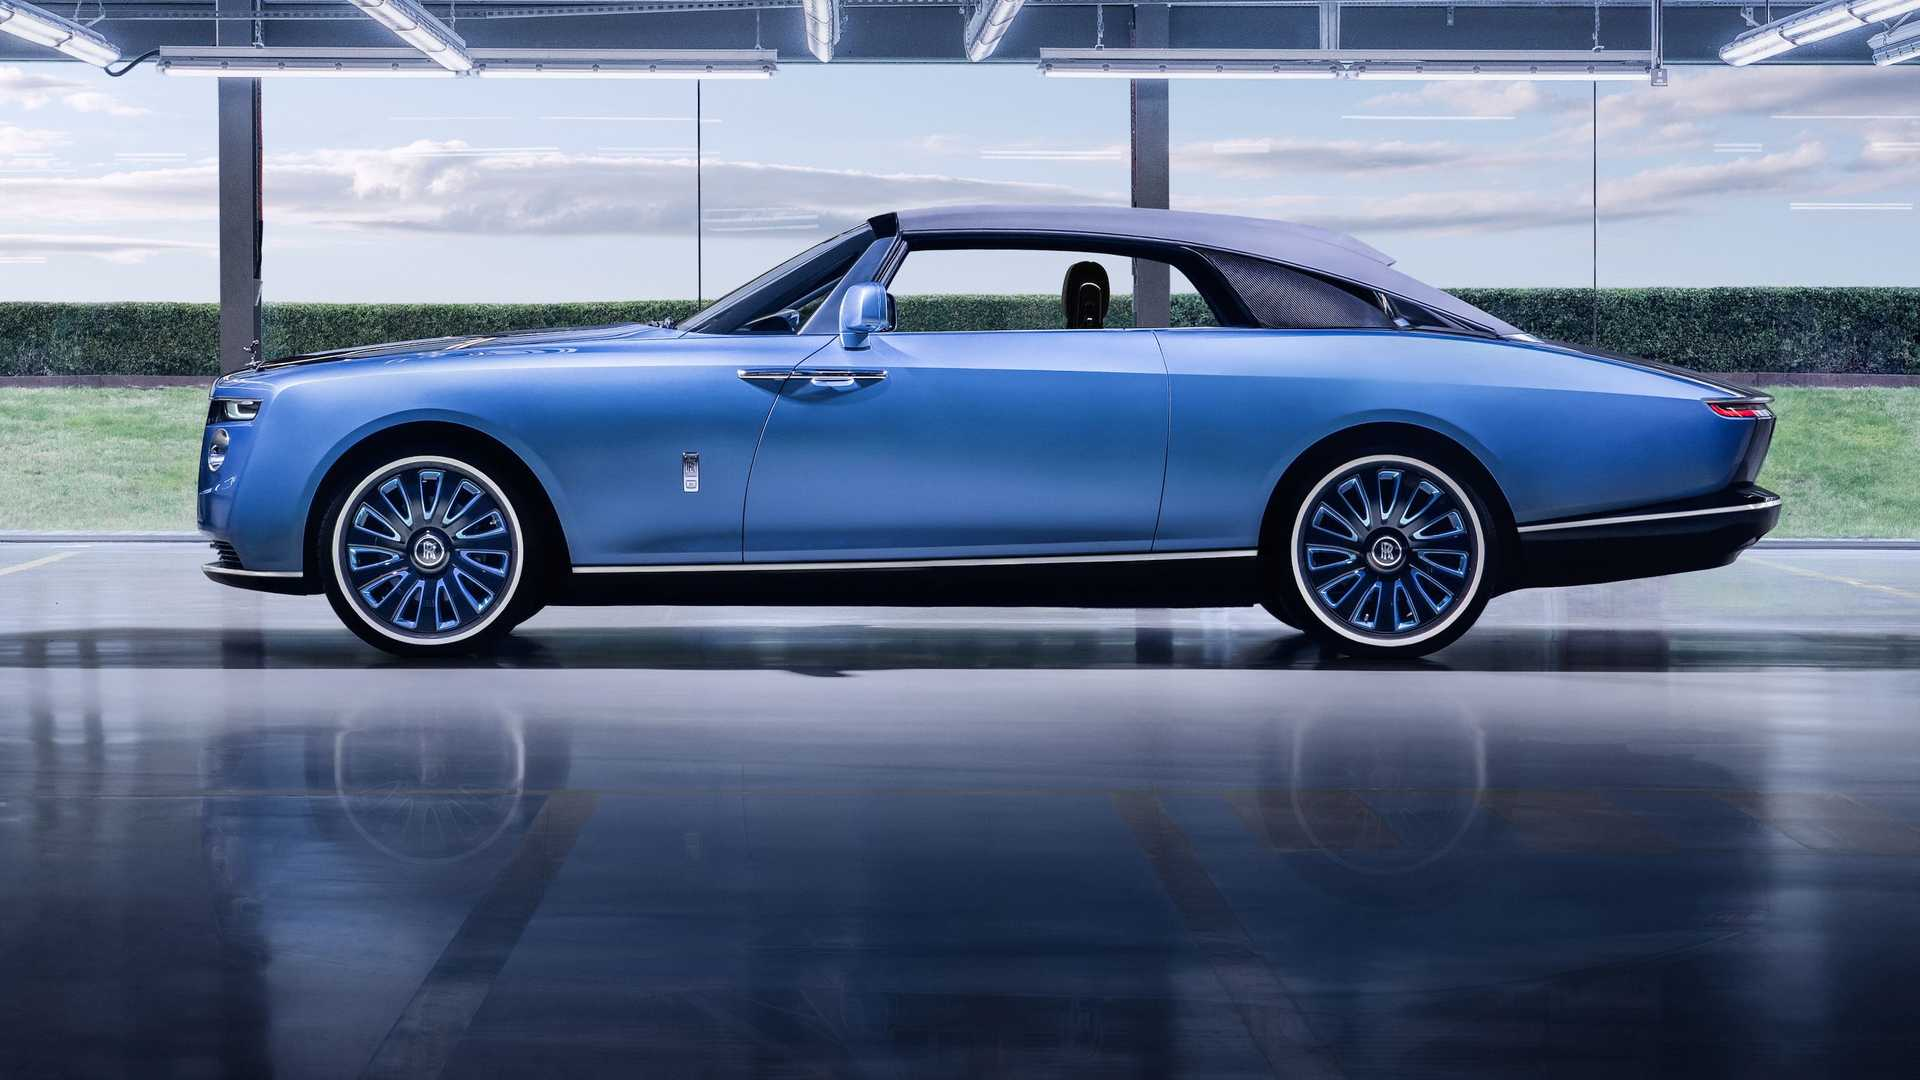 Land Yacht: The Rolls-Royce Boattail Is A One Off Exercise In Luxury And Styling